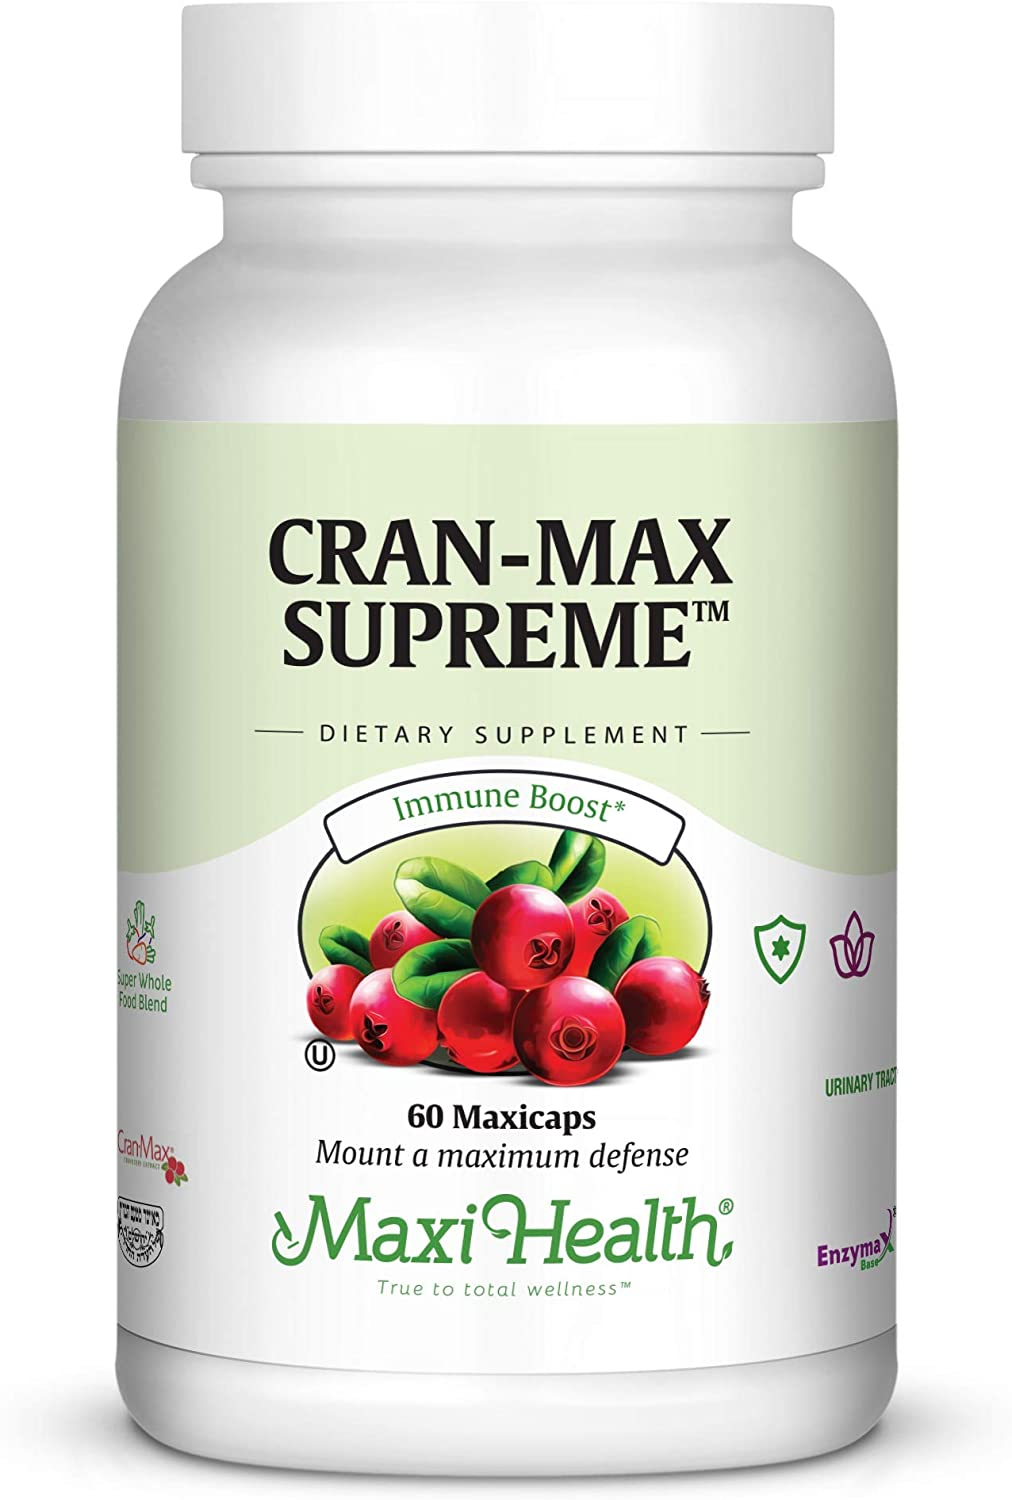 Maxi Health CranMax Supreme Urinary Tract and Immune Boost Capsules, 60 Count